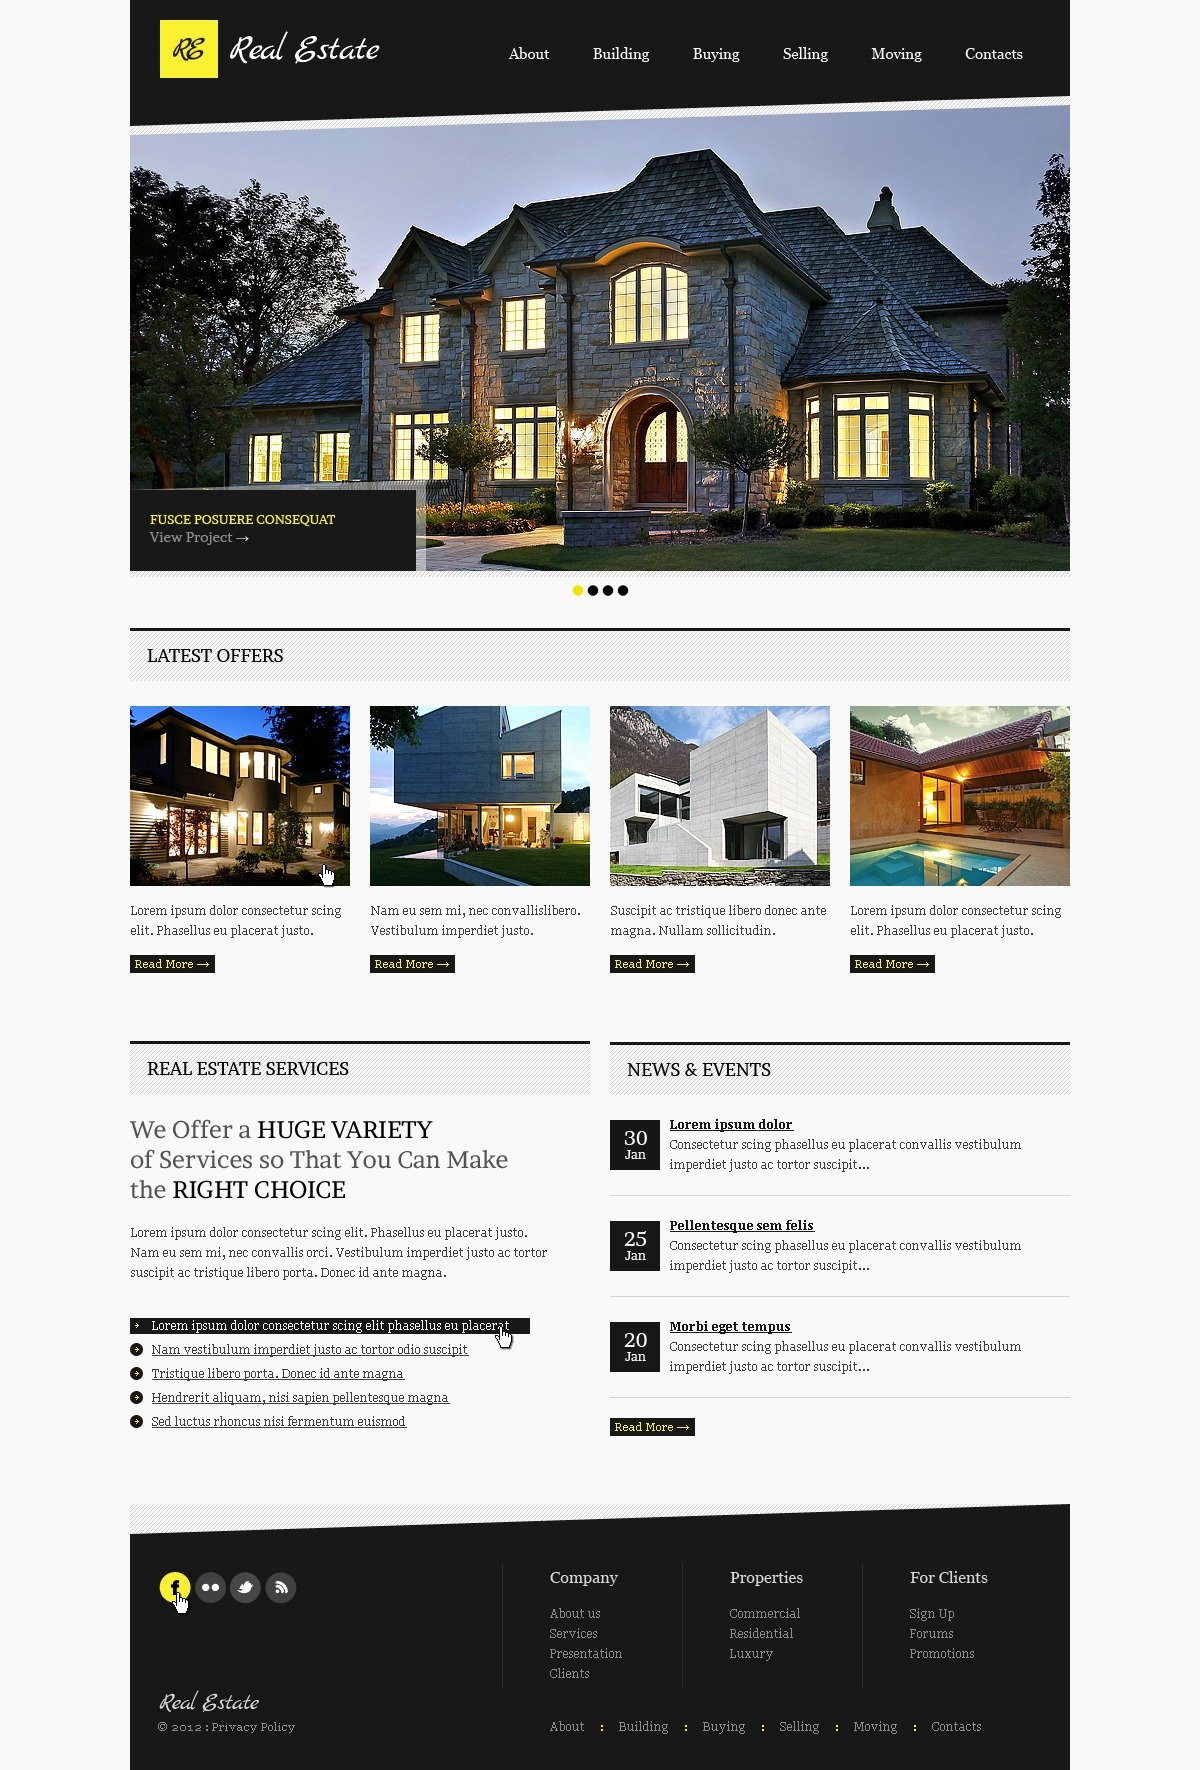 Real Estate Website Template Awesome Real Estate Website Template